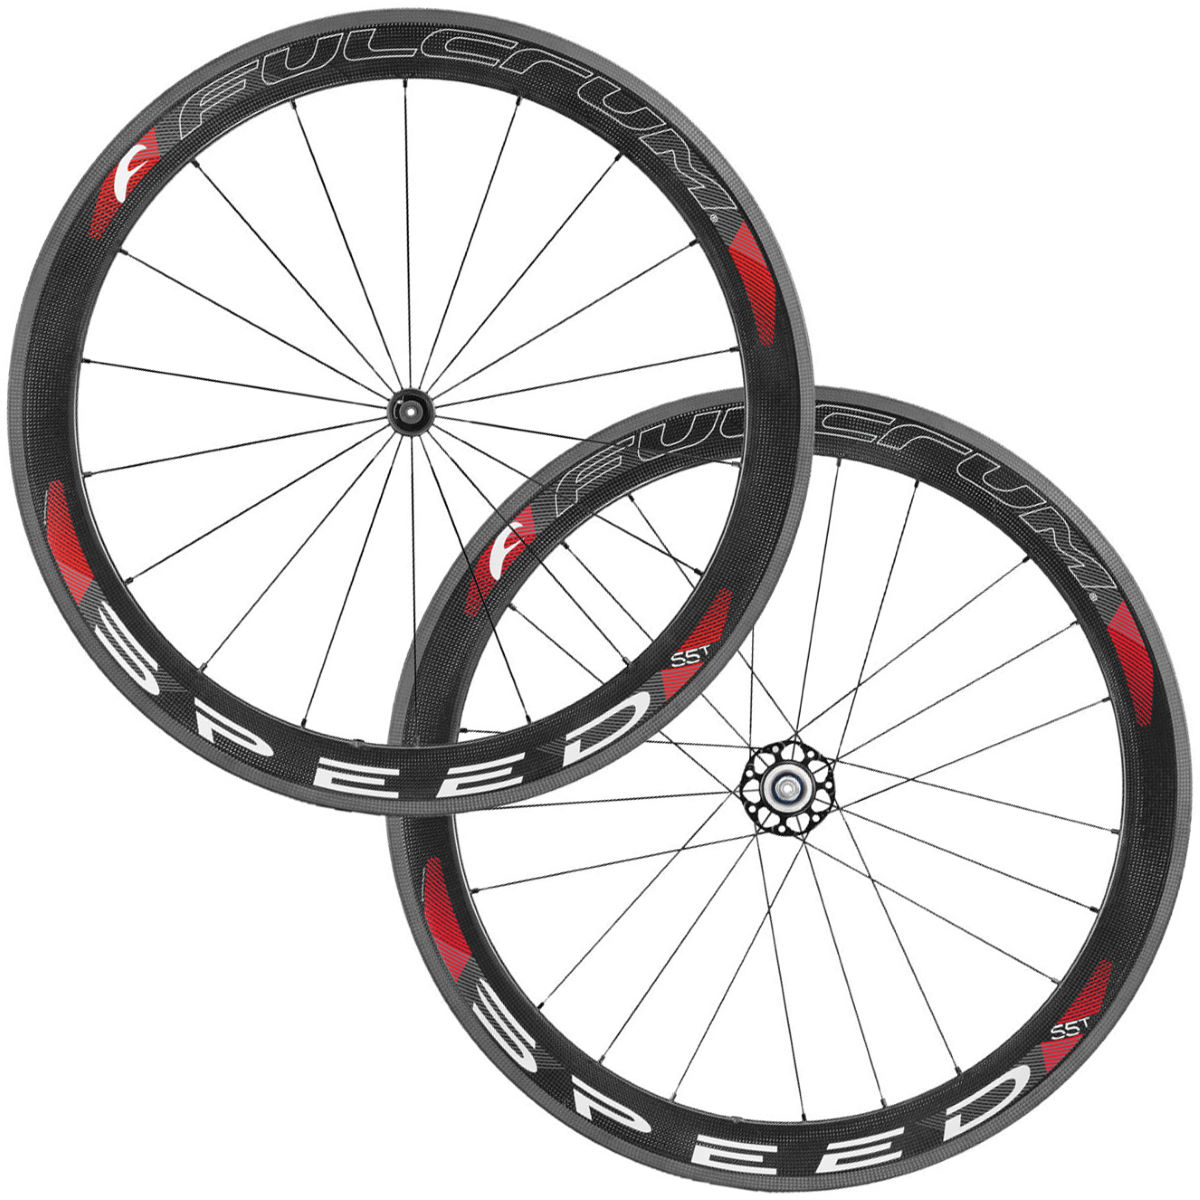 Fulcrum SPEED 55T Carbon Tubular Wheelset - 700c Campagnolo Carbon / Red Roues performance